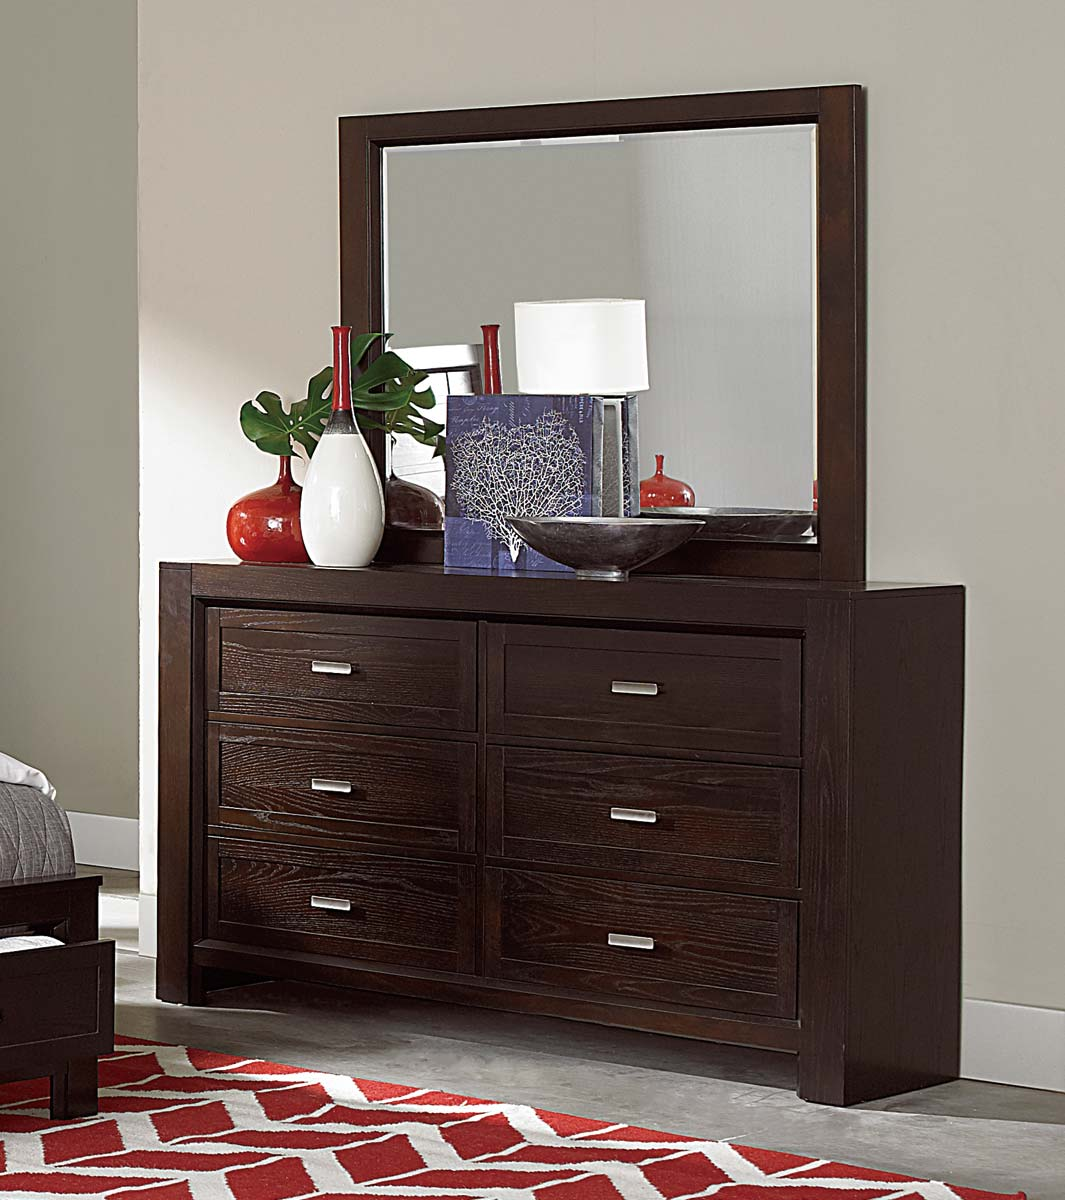 Homelegance Breese Dresser - Dark Cherry